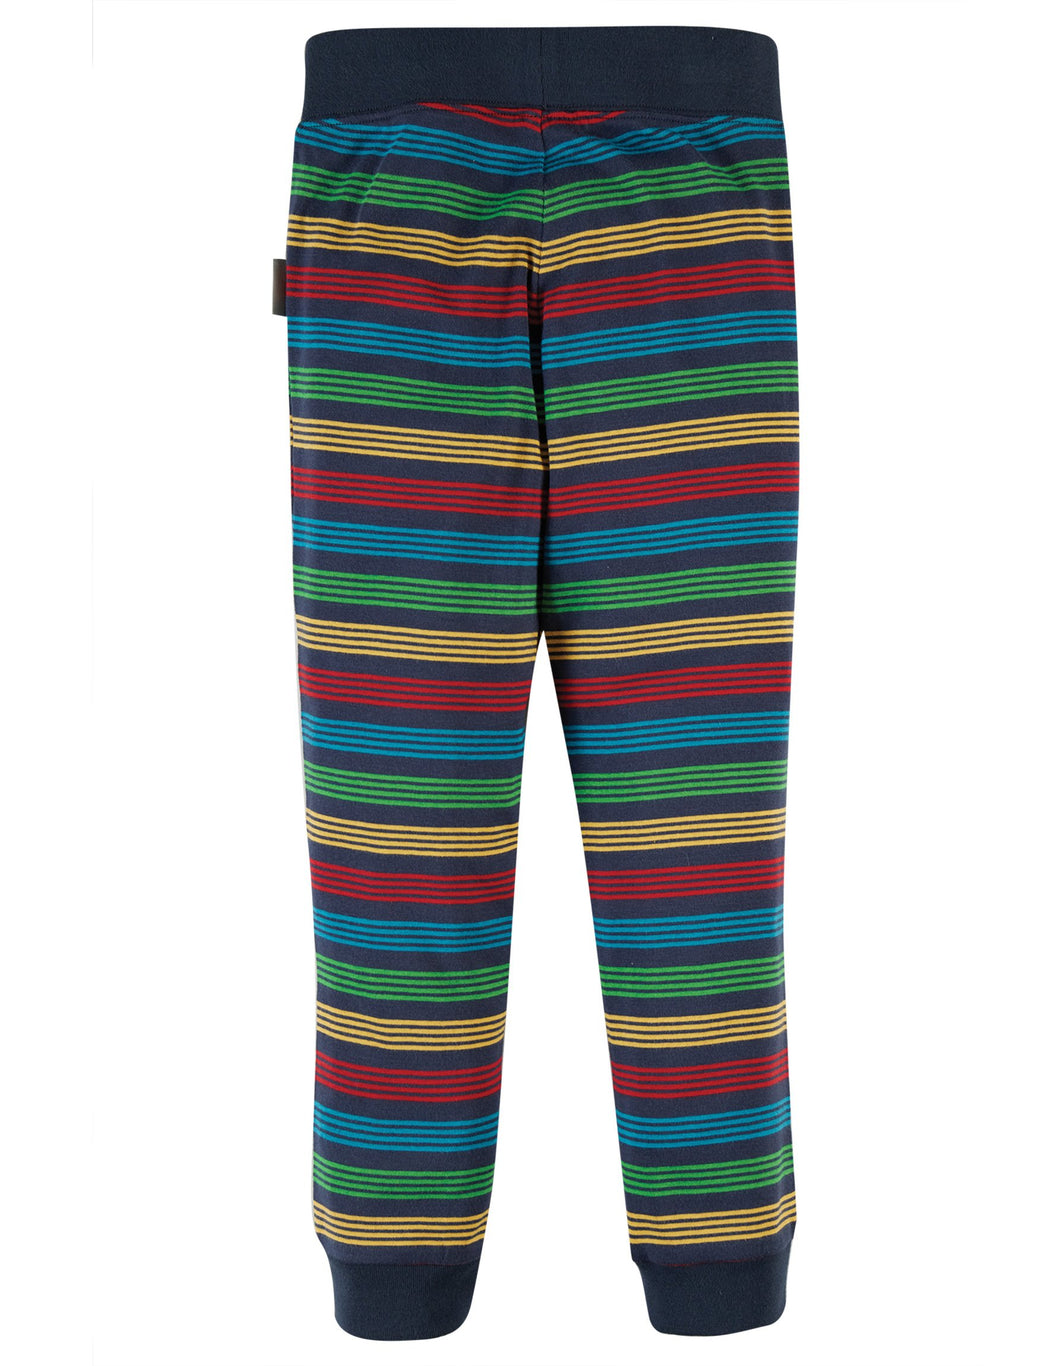 New Release Frugi Favourite Cuffed Legging Tobermory Rainbow Stripe - The Thrifty Stork